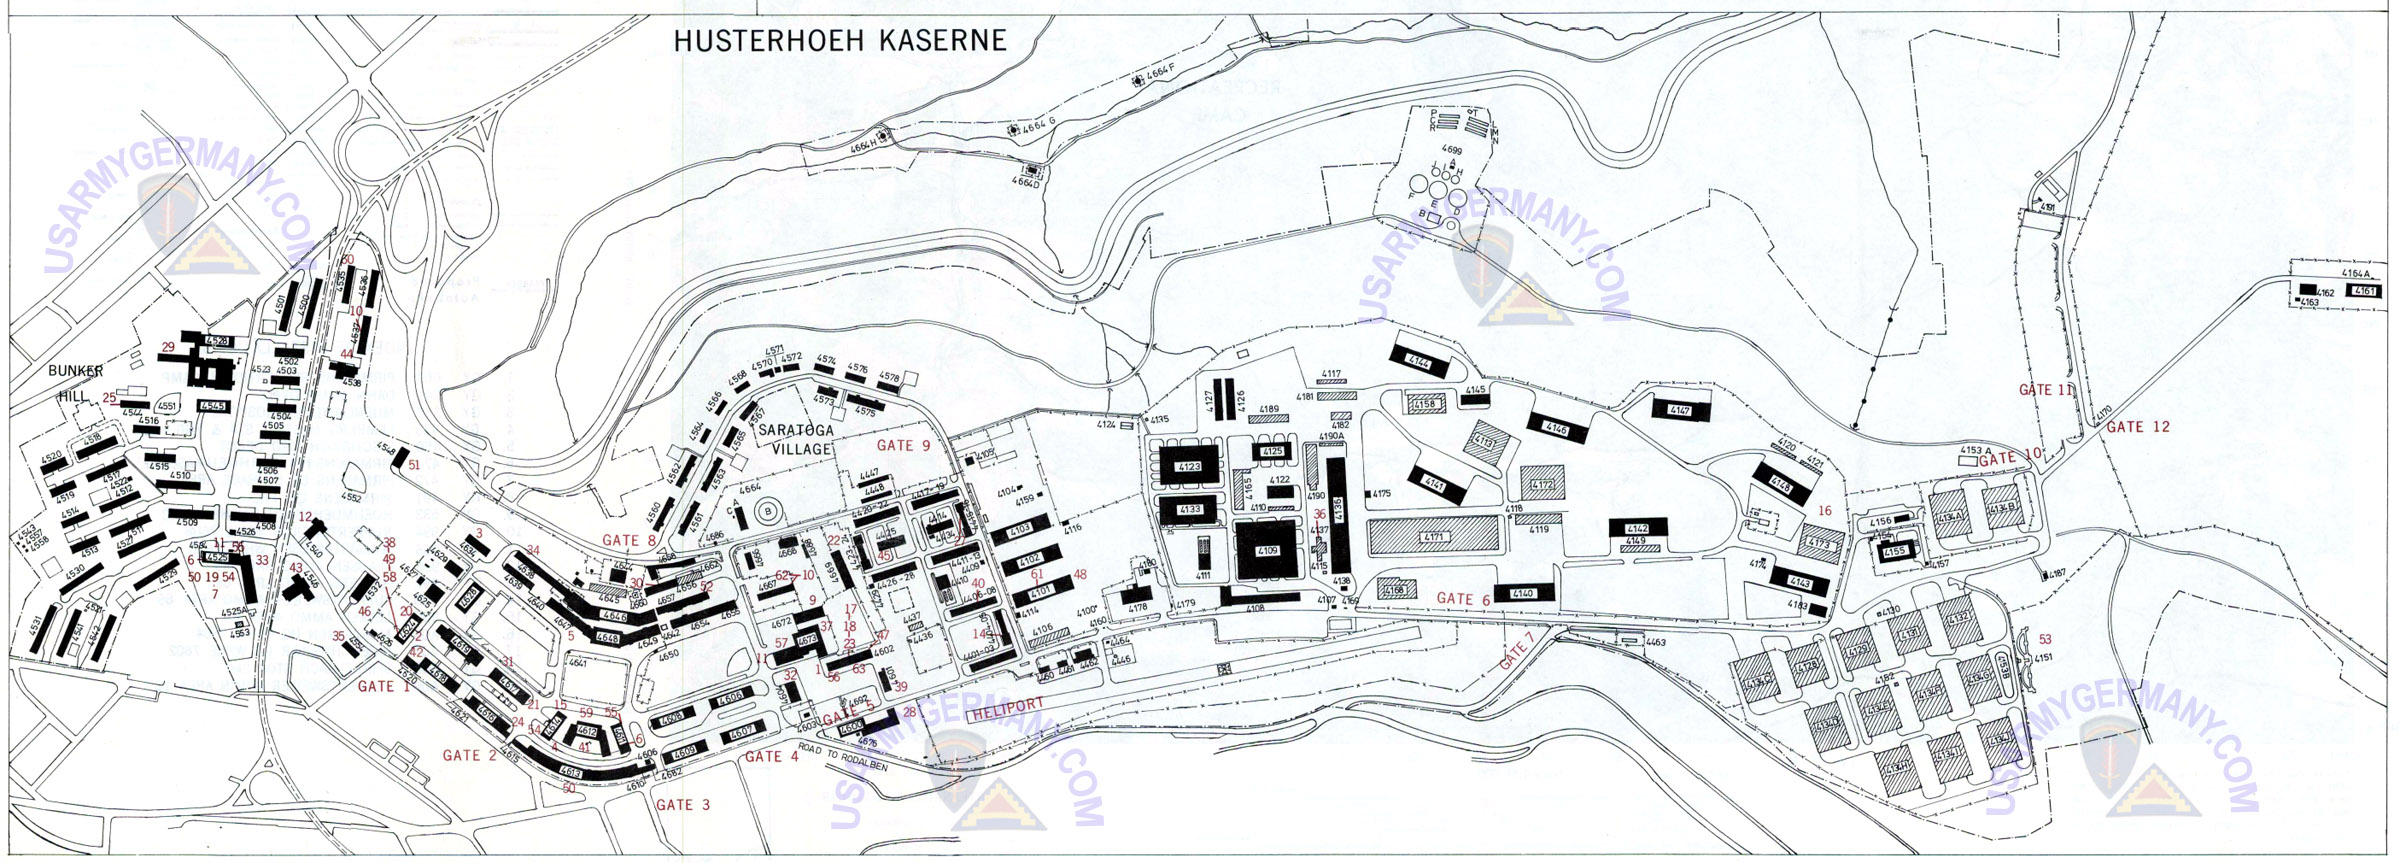 USAREUR Installation Maps Husterhoeh Late 1970s